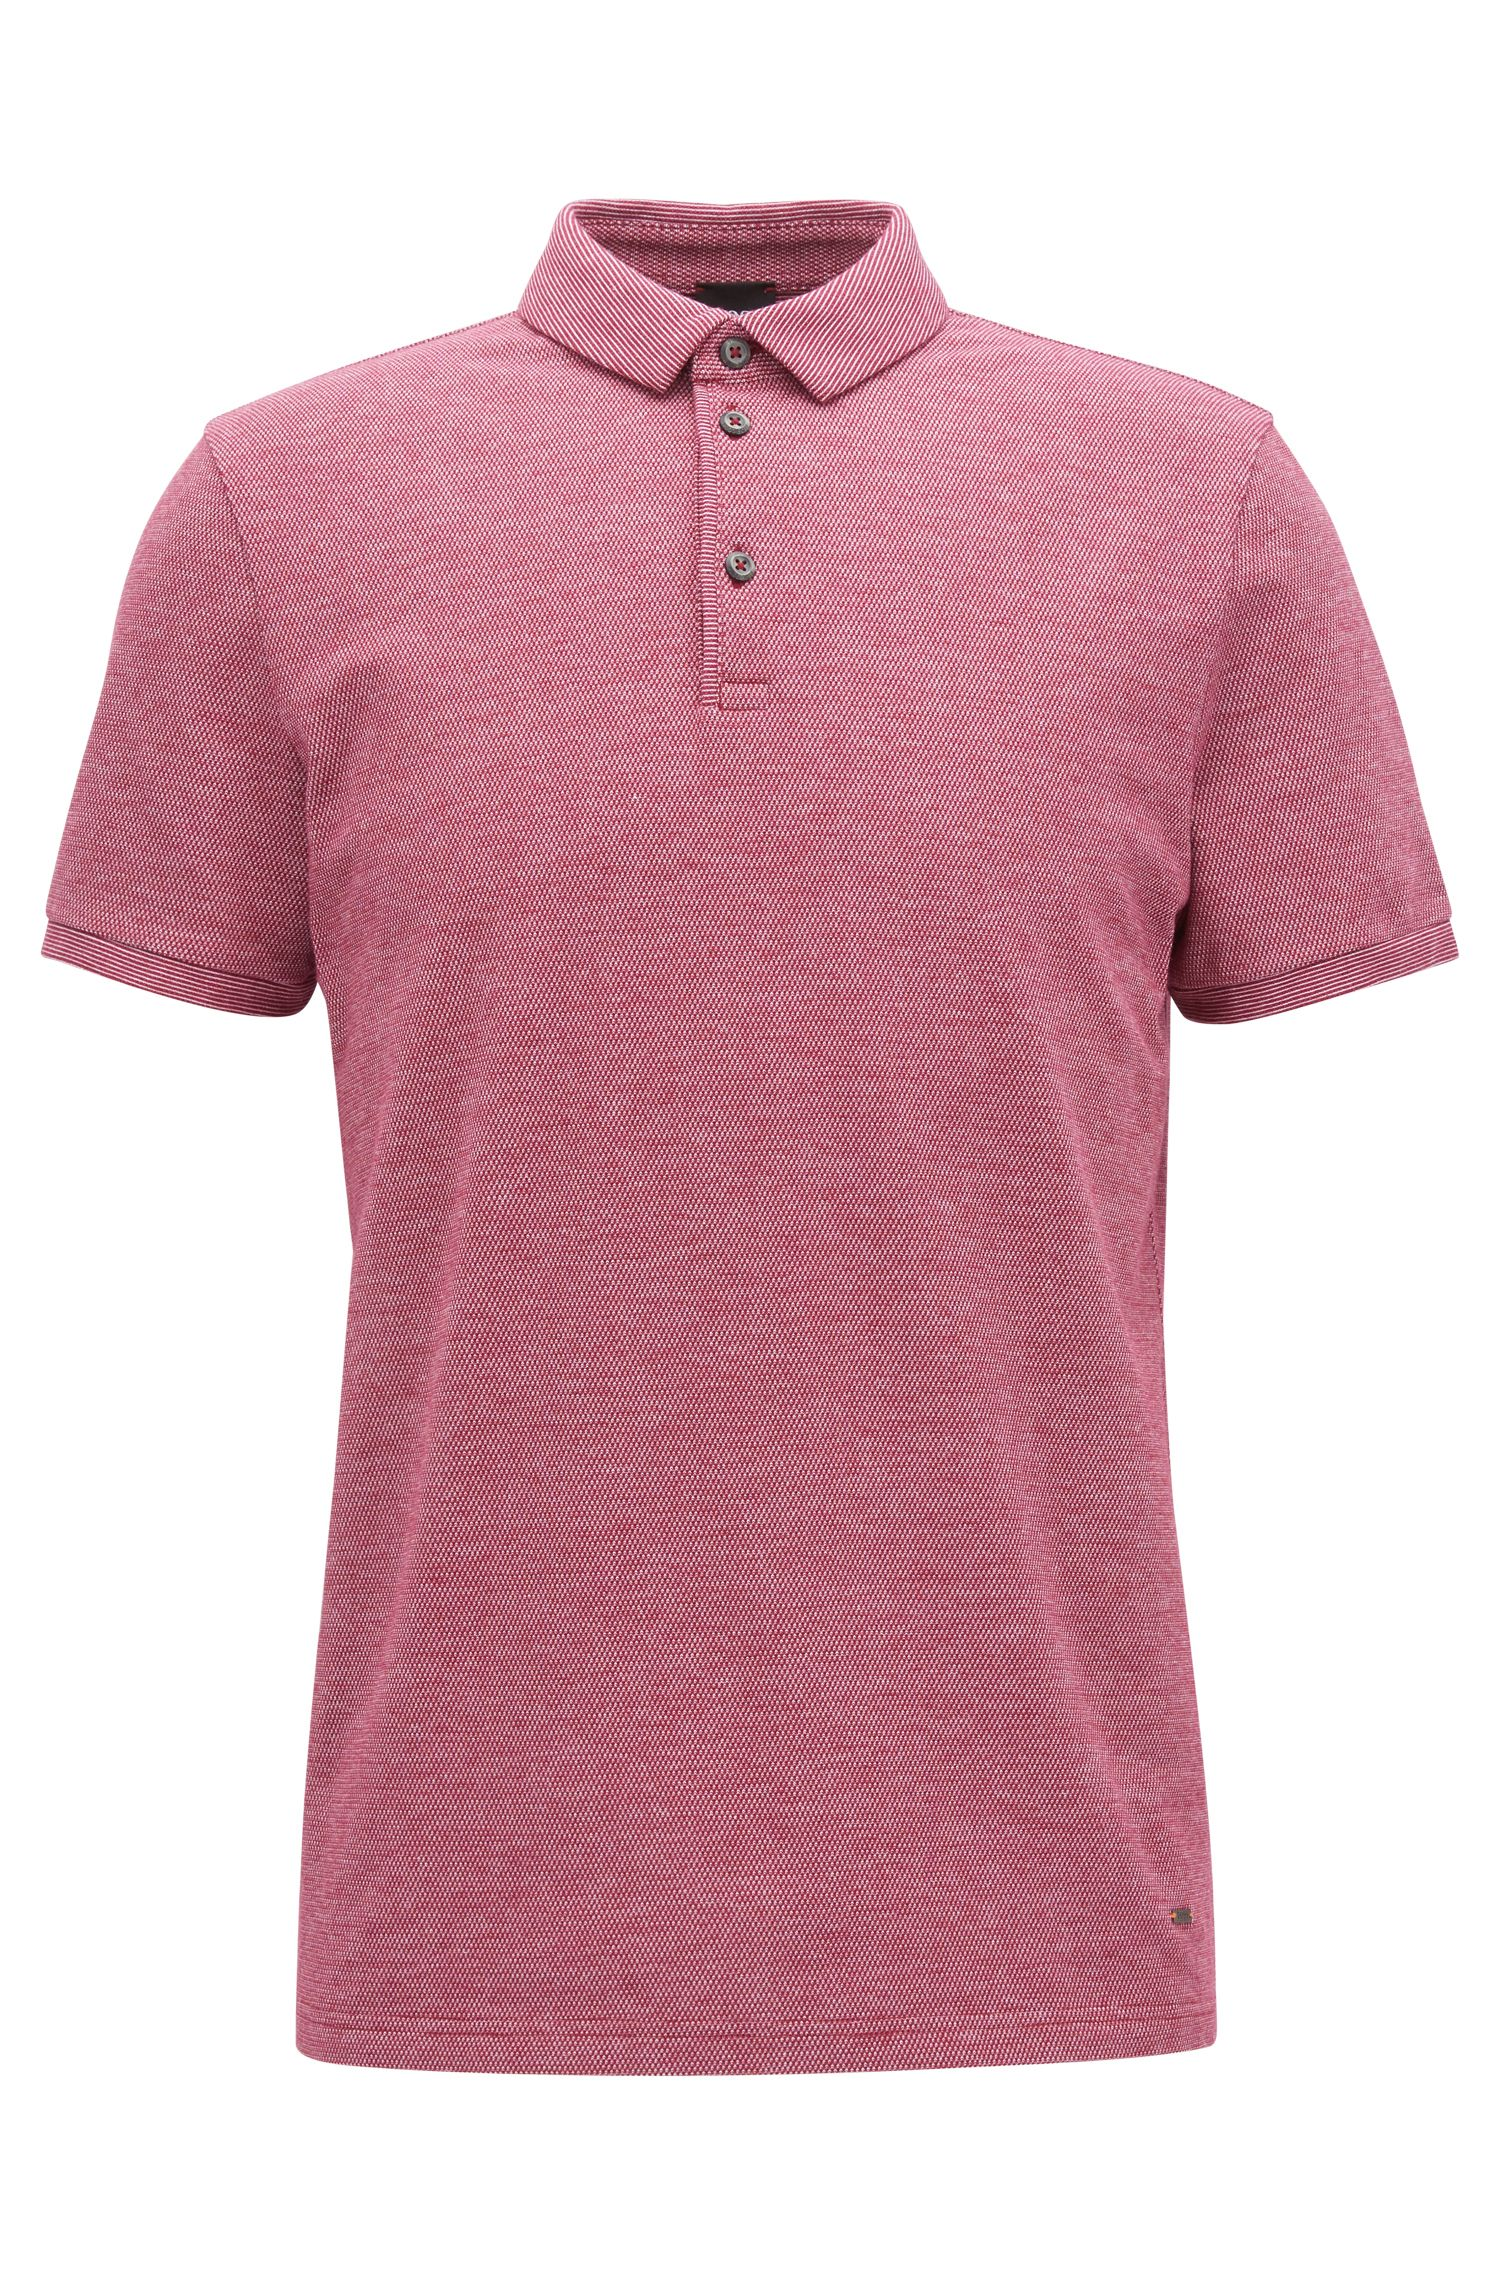 Polo relaxed fit de piqué Oxford elástico